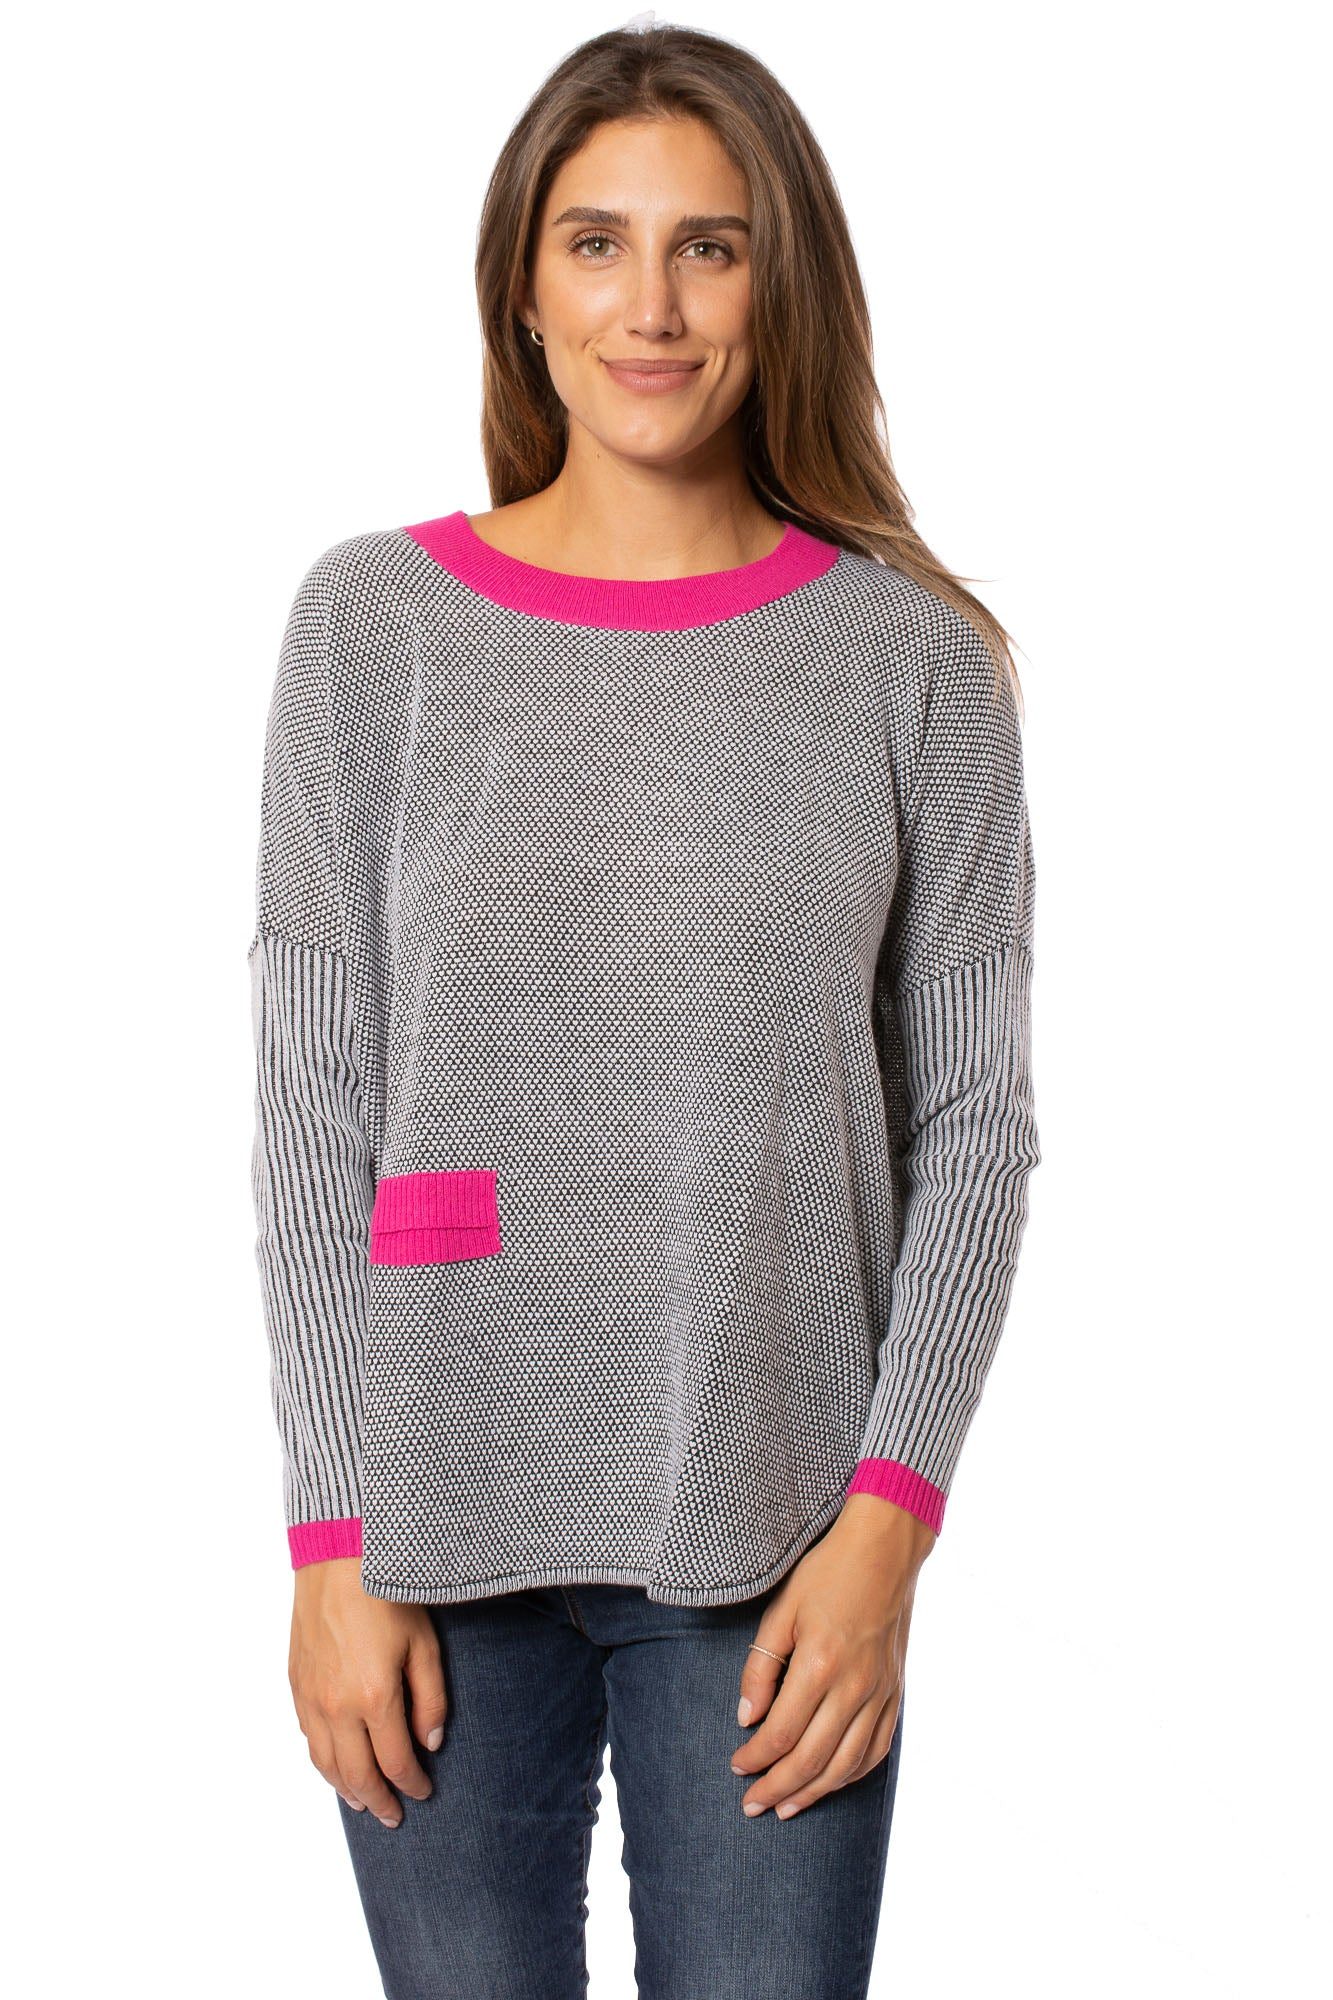 Zaket & Plover - Crew Neck Long Sleeve Sweater (ZW209OU, Grey/Pink/Black)